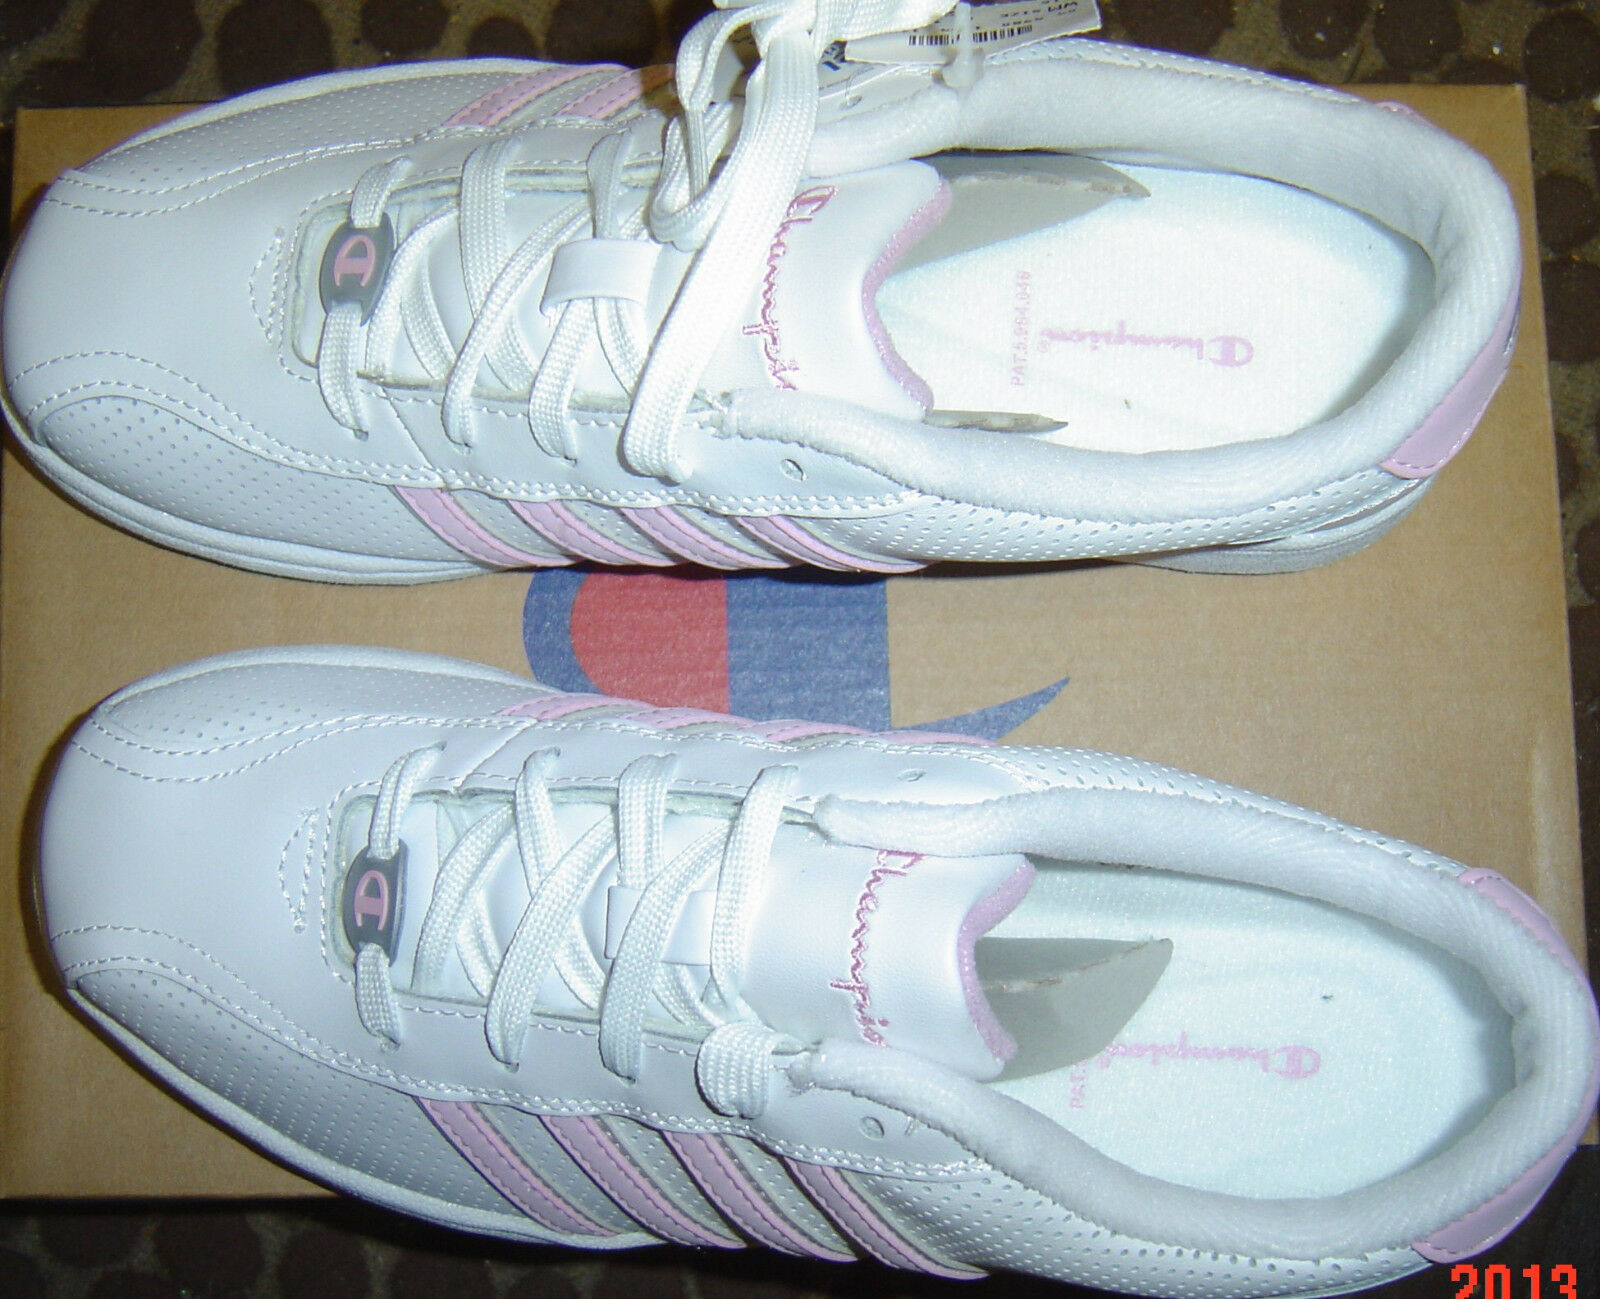 12X WHOLESALE Lot CHAMPION femmes Chaussures TENNIS Gym SZ 5 - 7 rose blanc LEATHER